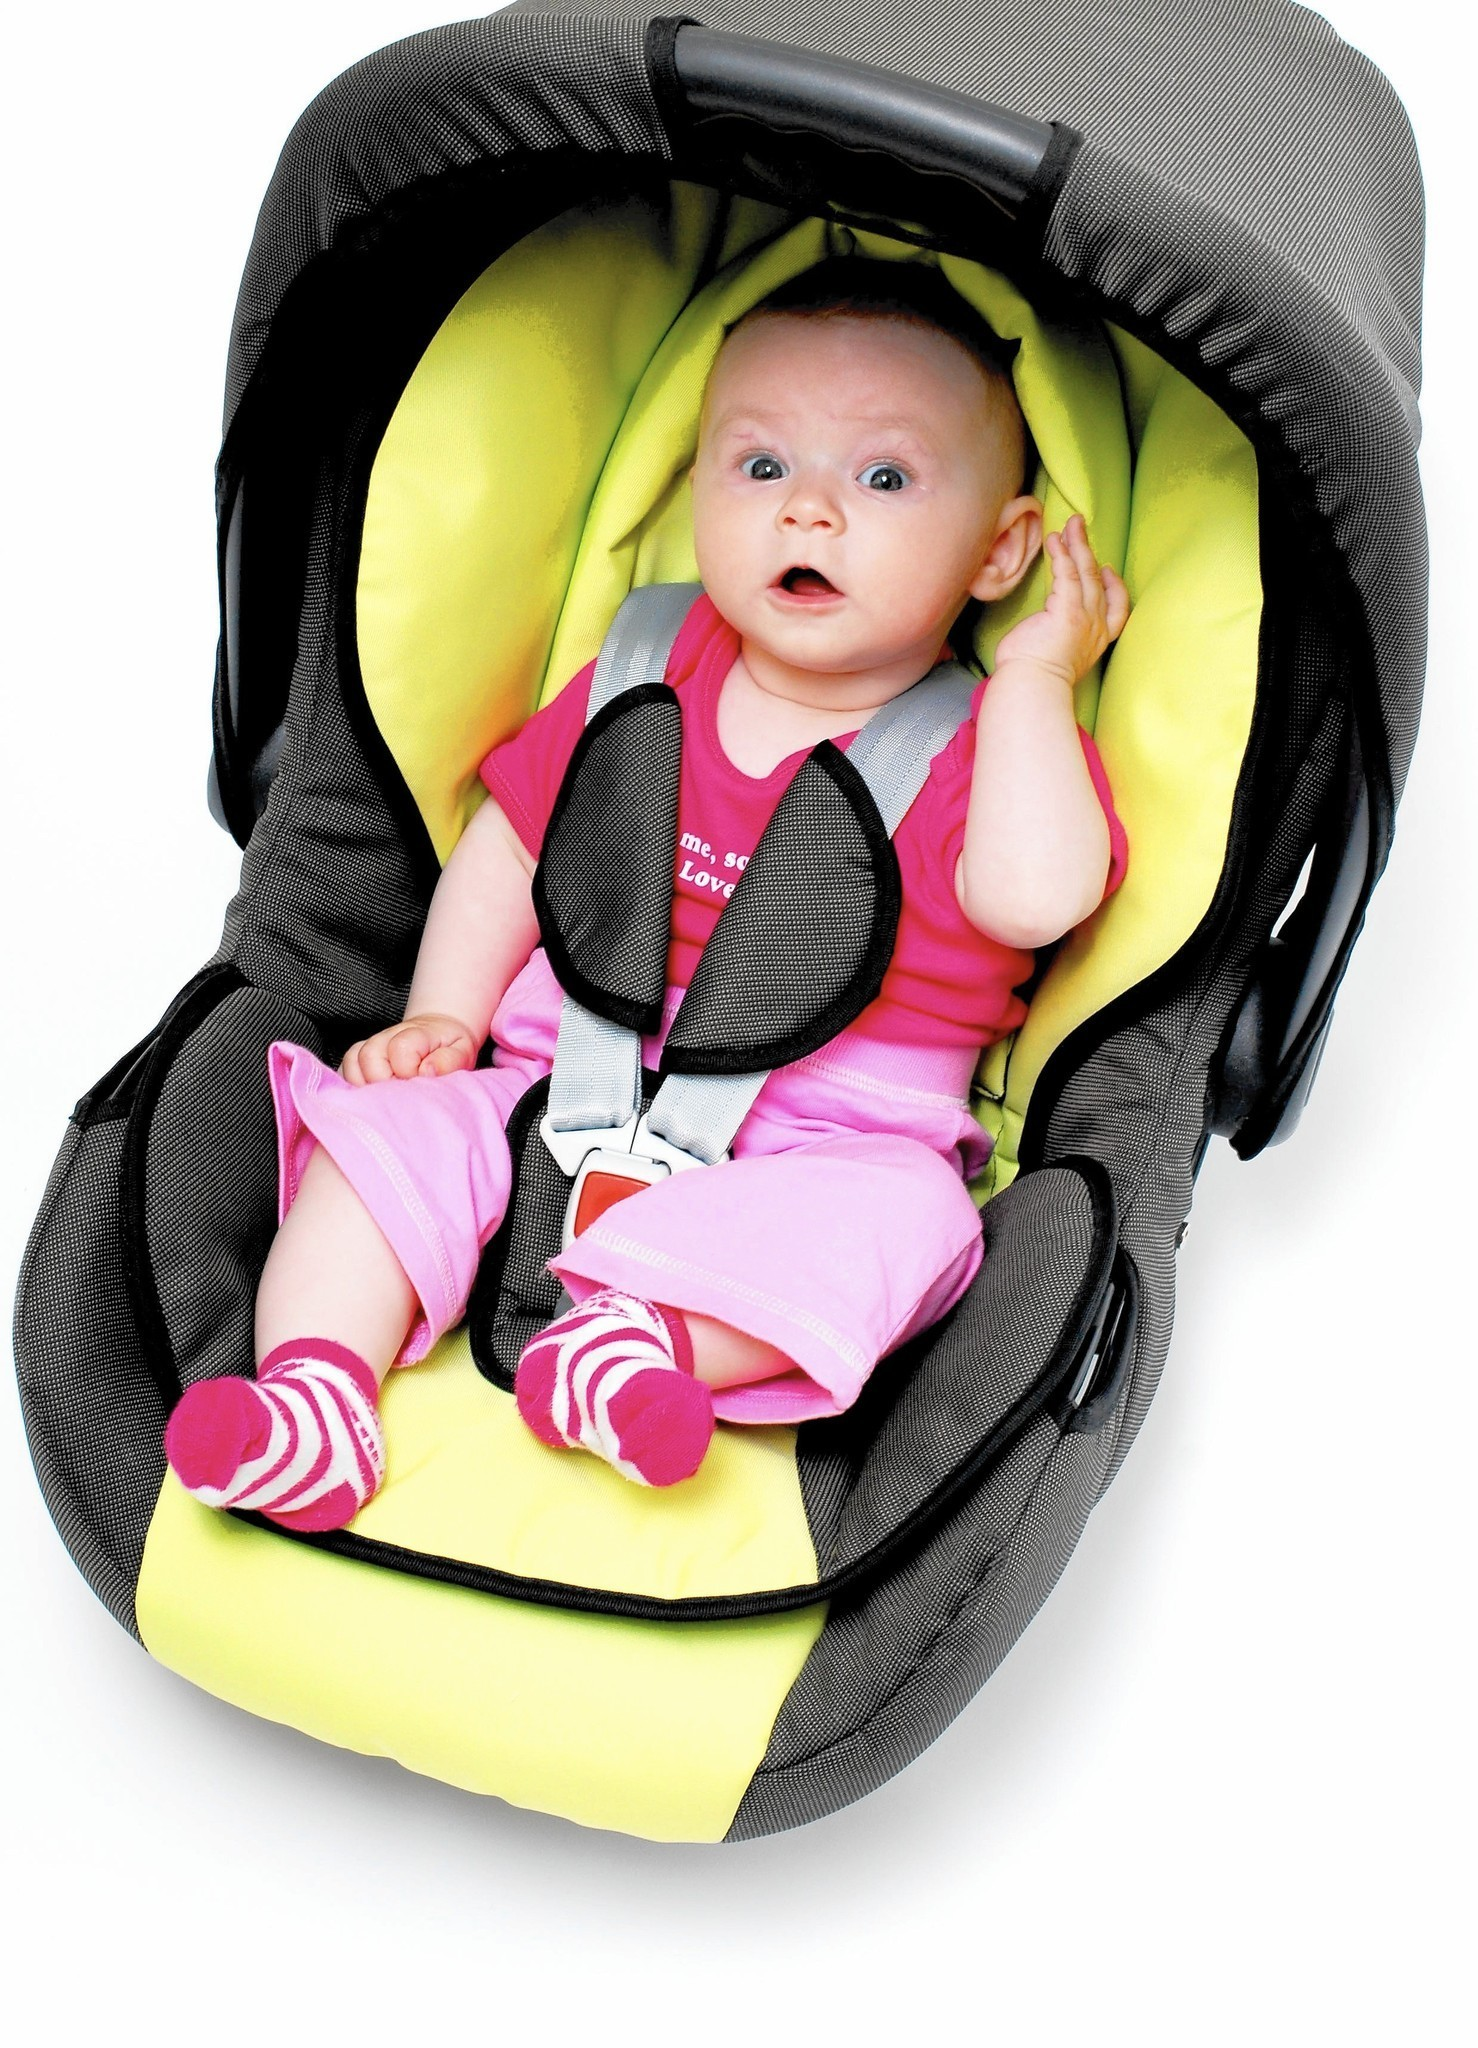 PA law to require children under 2 to ride in rear-facing car seats ...